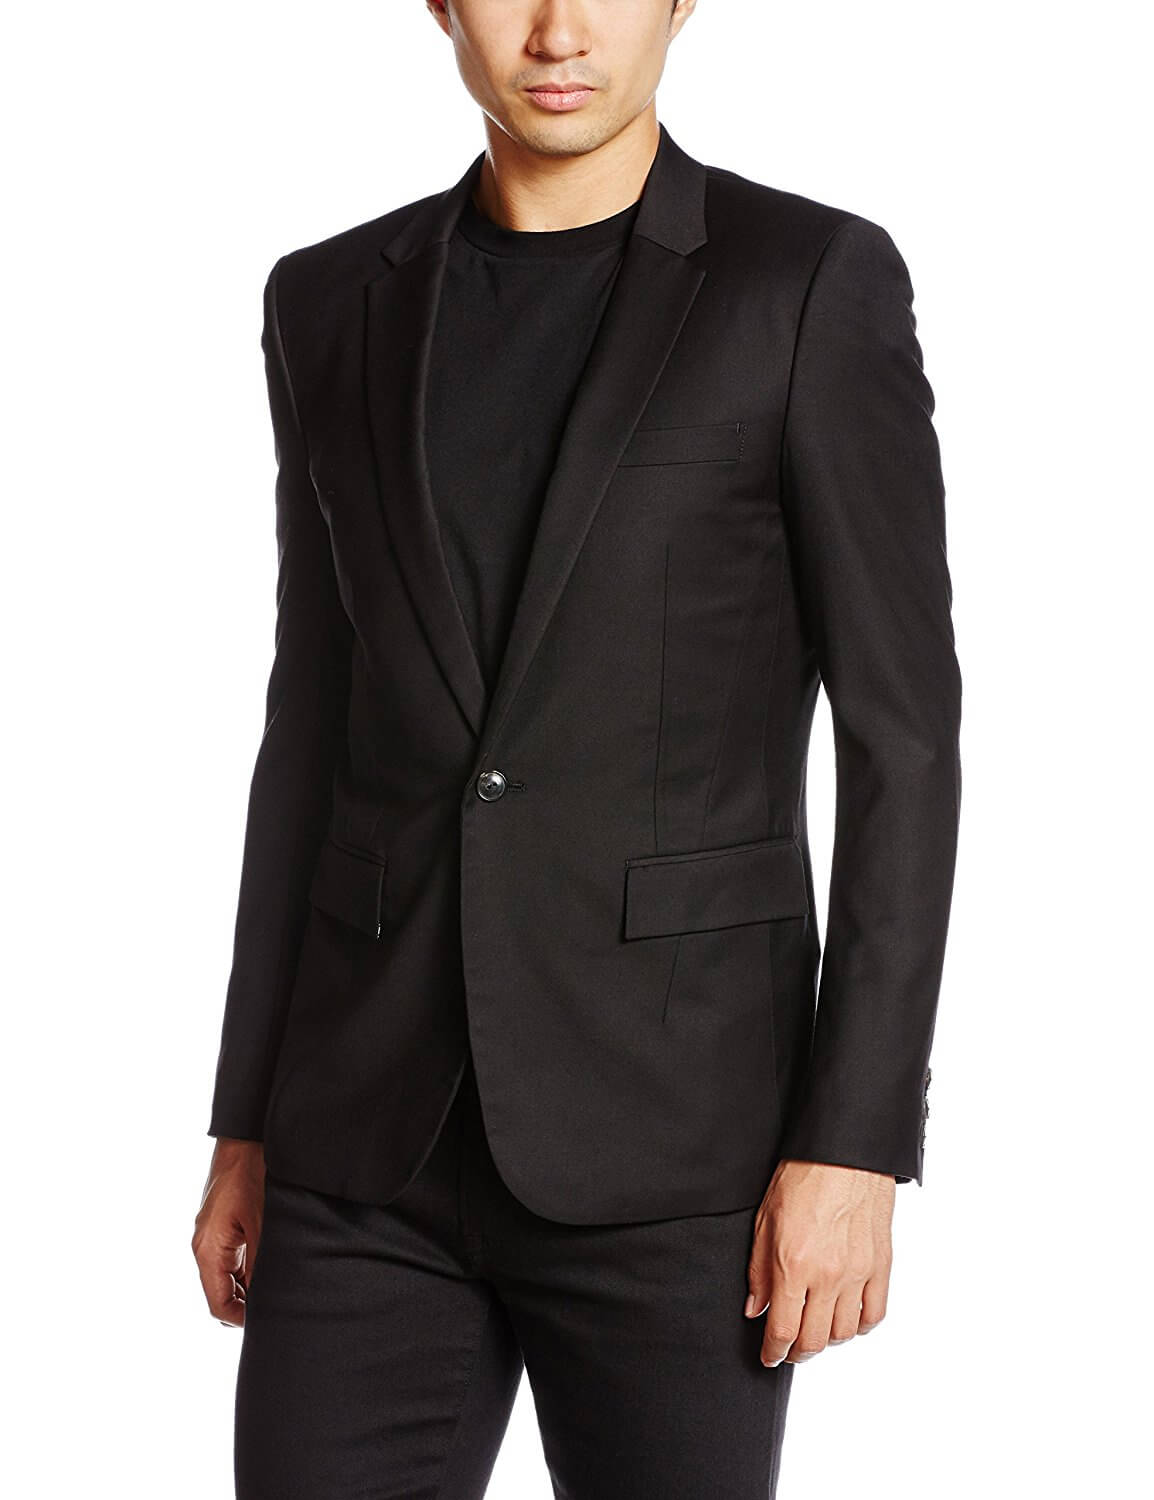 NUMBER (N)INE 1B TAILORED JACKET